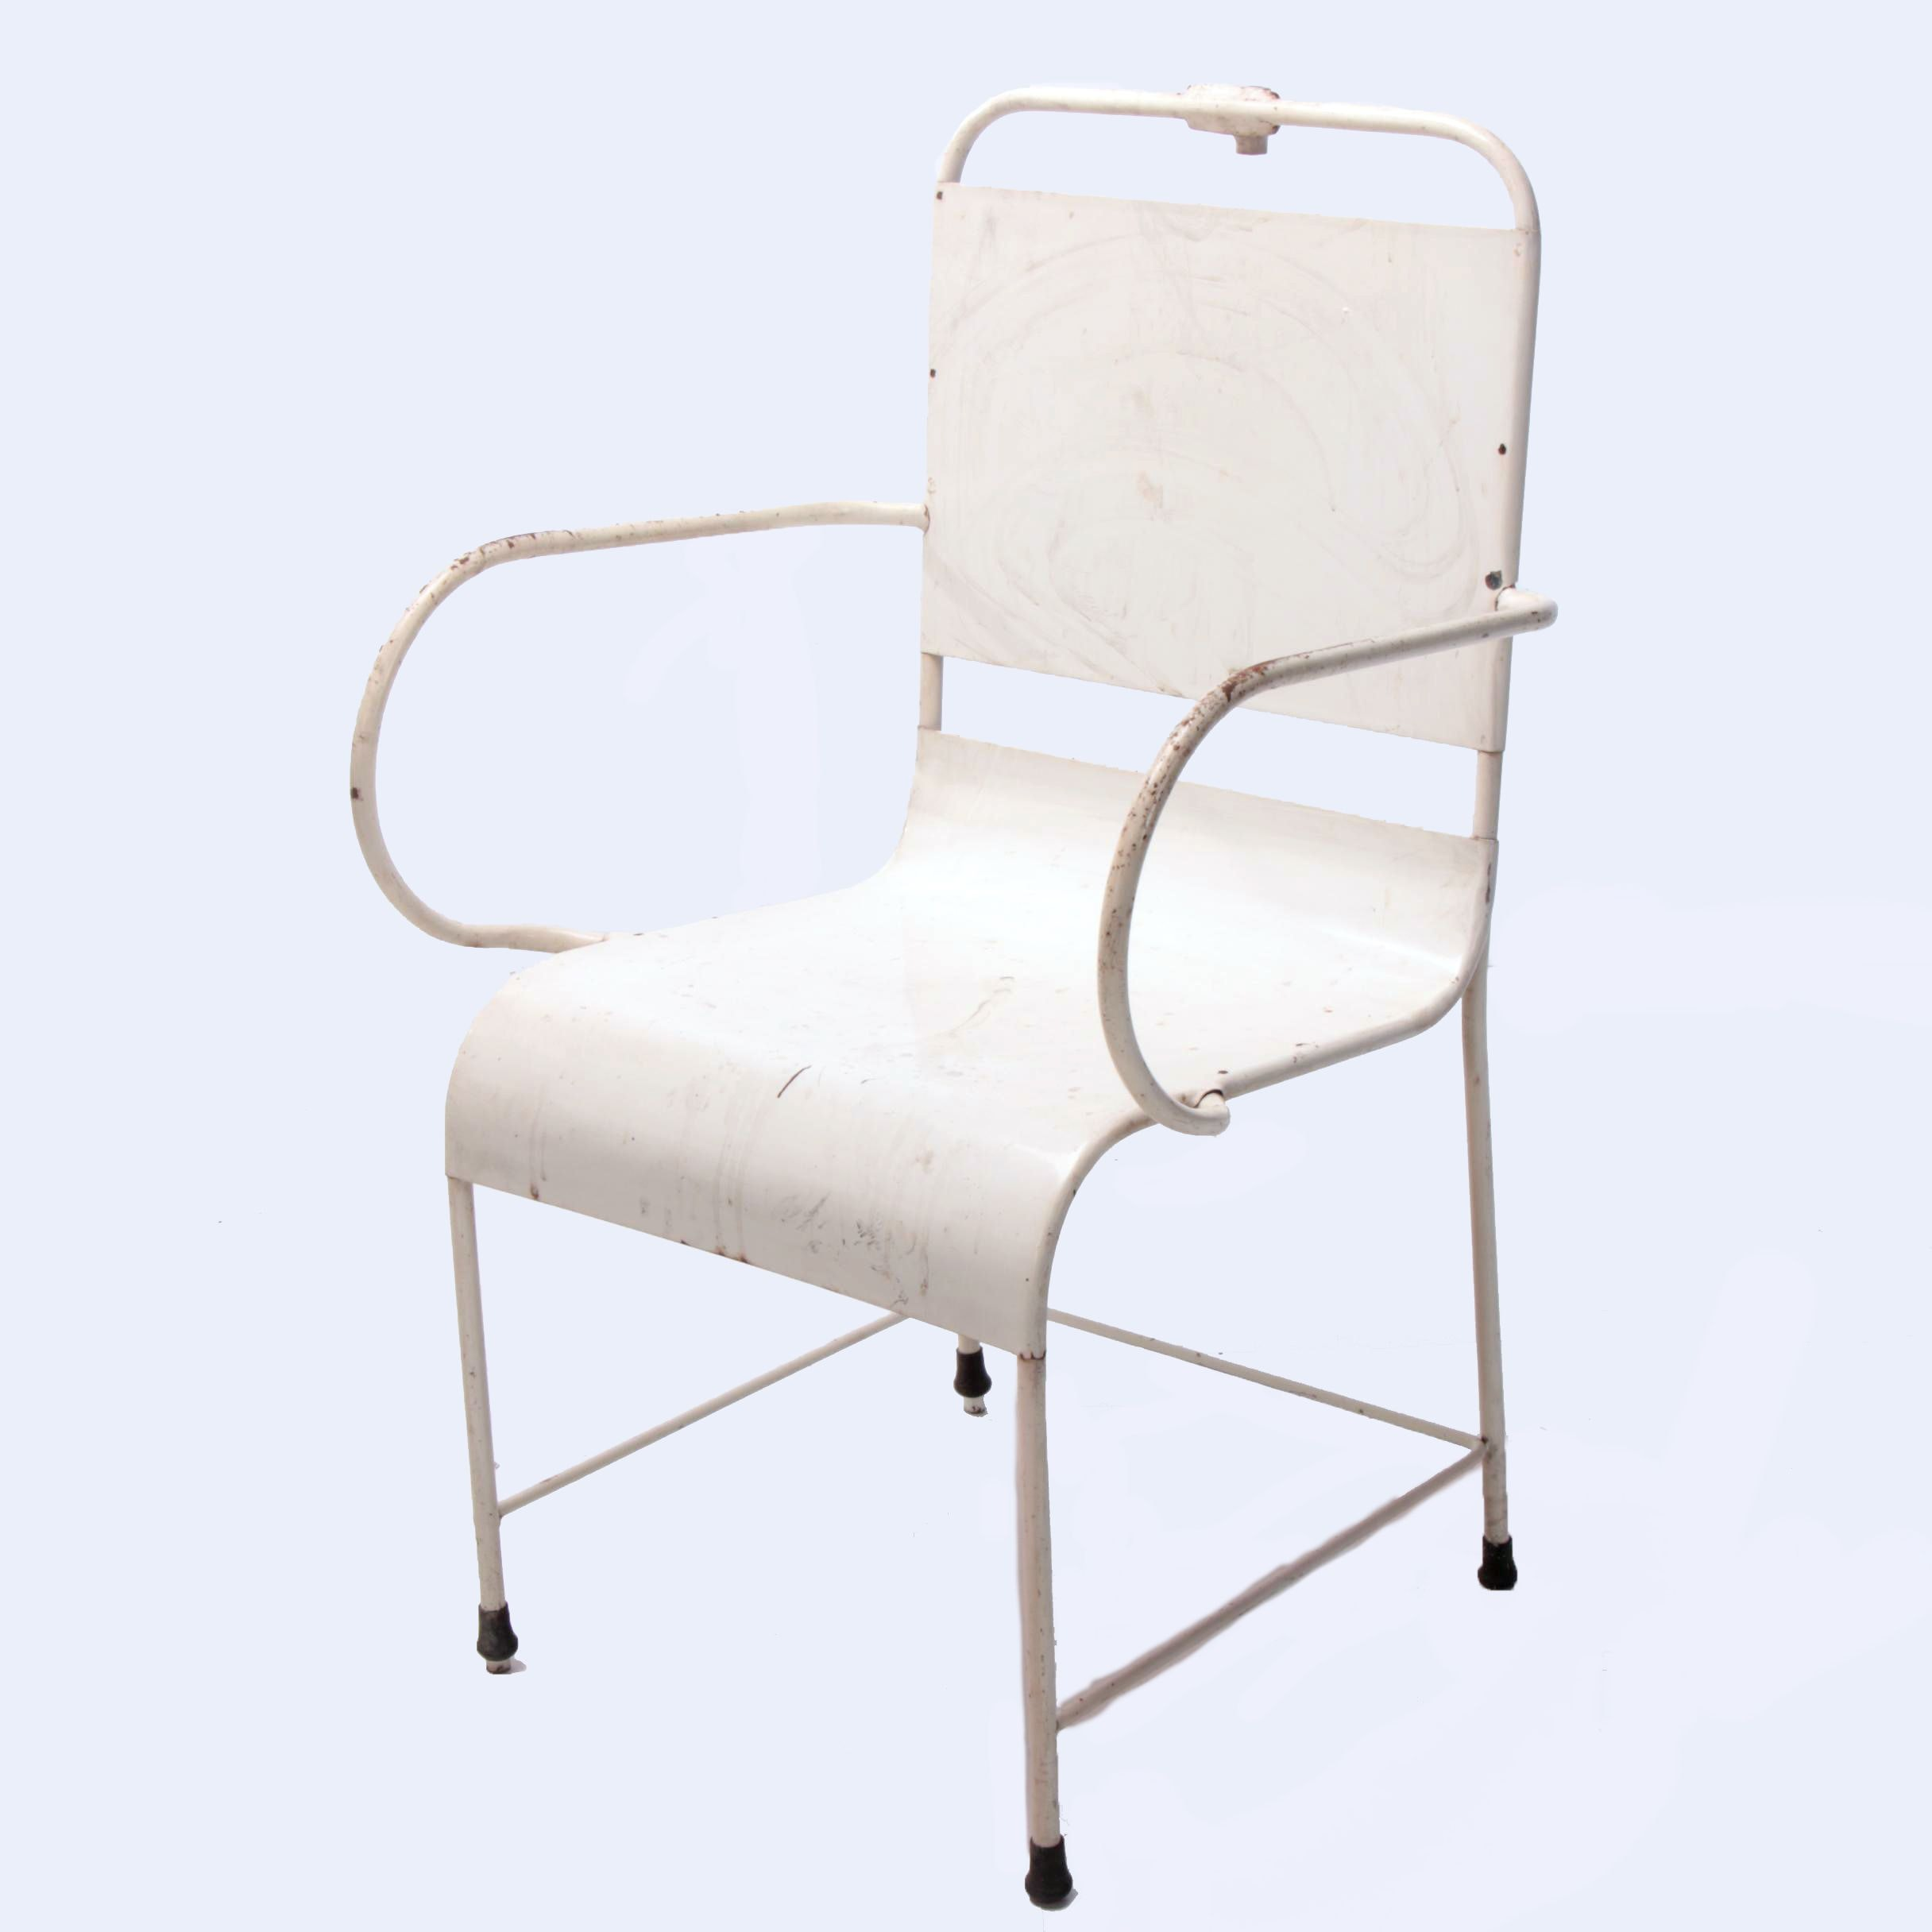 A.S. Aloe Co., White-Painted Steel Medical Exam Chair, 2nd Quarter 20th Century